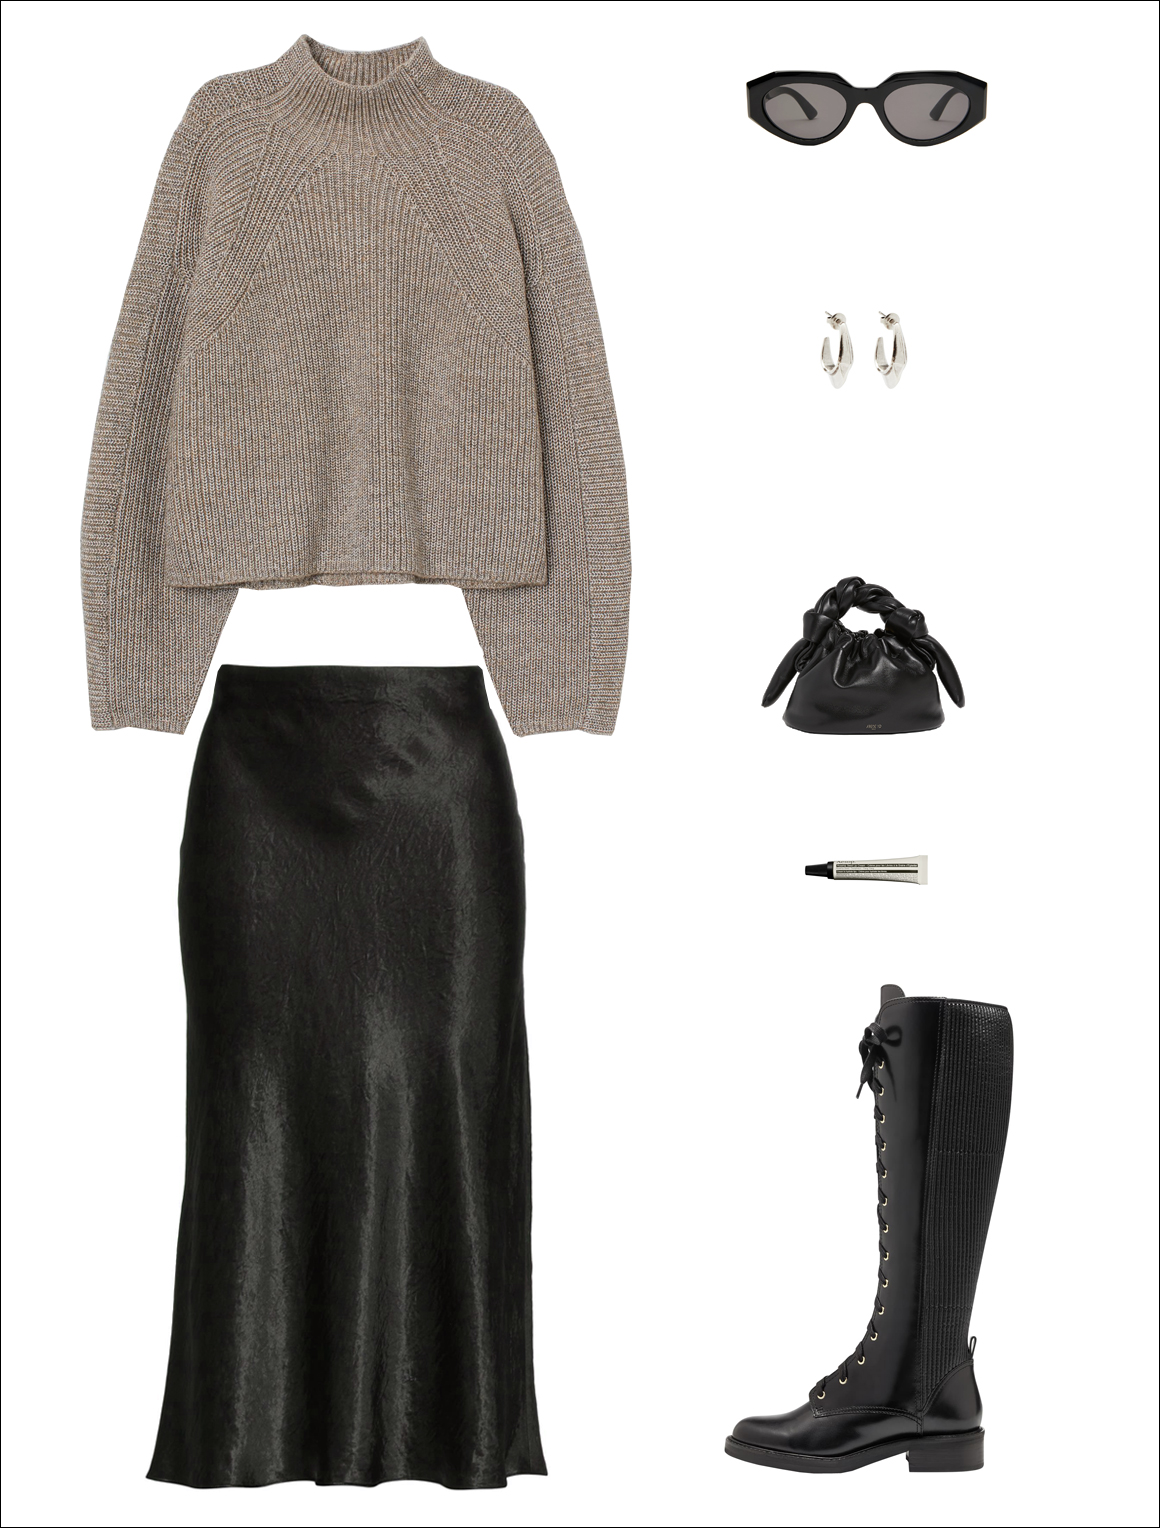 How to Wear a Slip Skirt for Fall and Winter — Under $100 turtleneck sweater, Vince black midi satin skirt, black mini knotted bag, Bottega Veneta cat-eye sunglasses, and lace-up knee-high combat boots